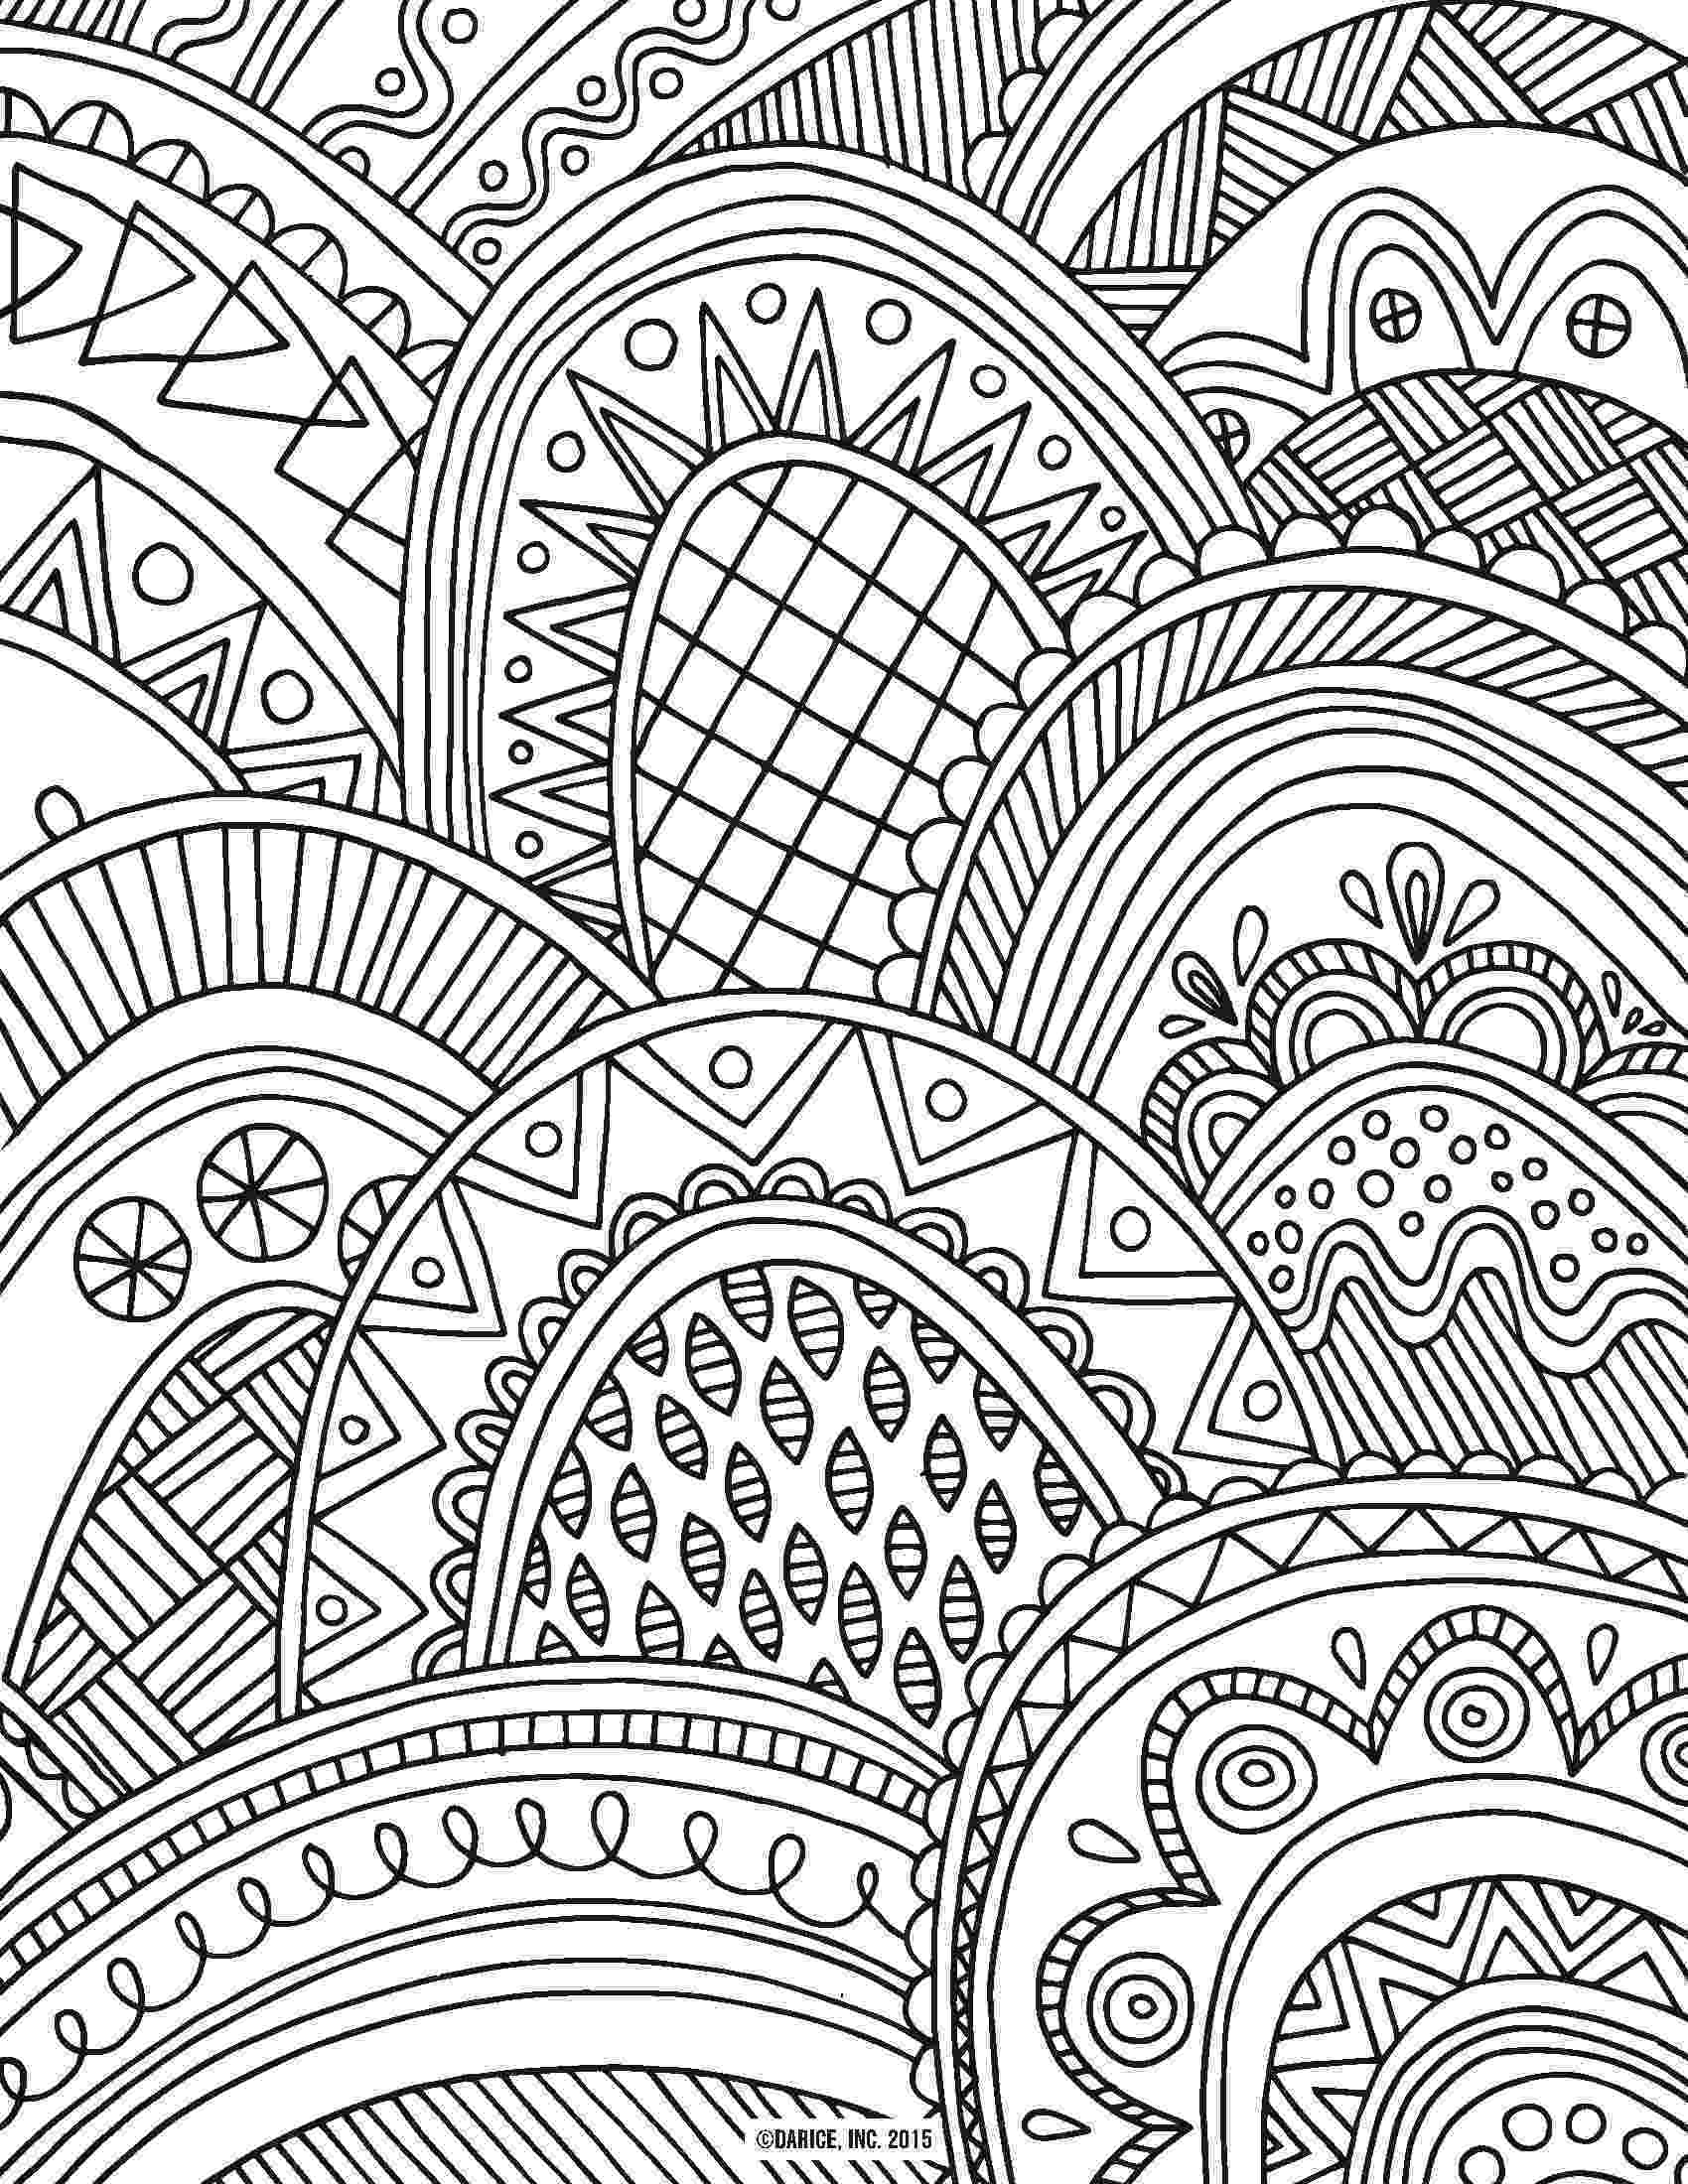 new colouring pages for adults times square new york 1 by edgeman13 deviantart adult colouring adults new pages for